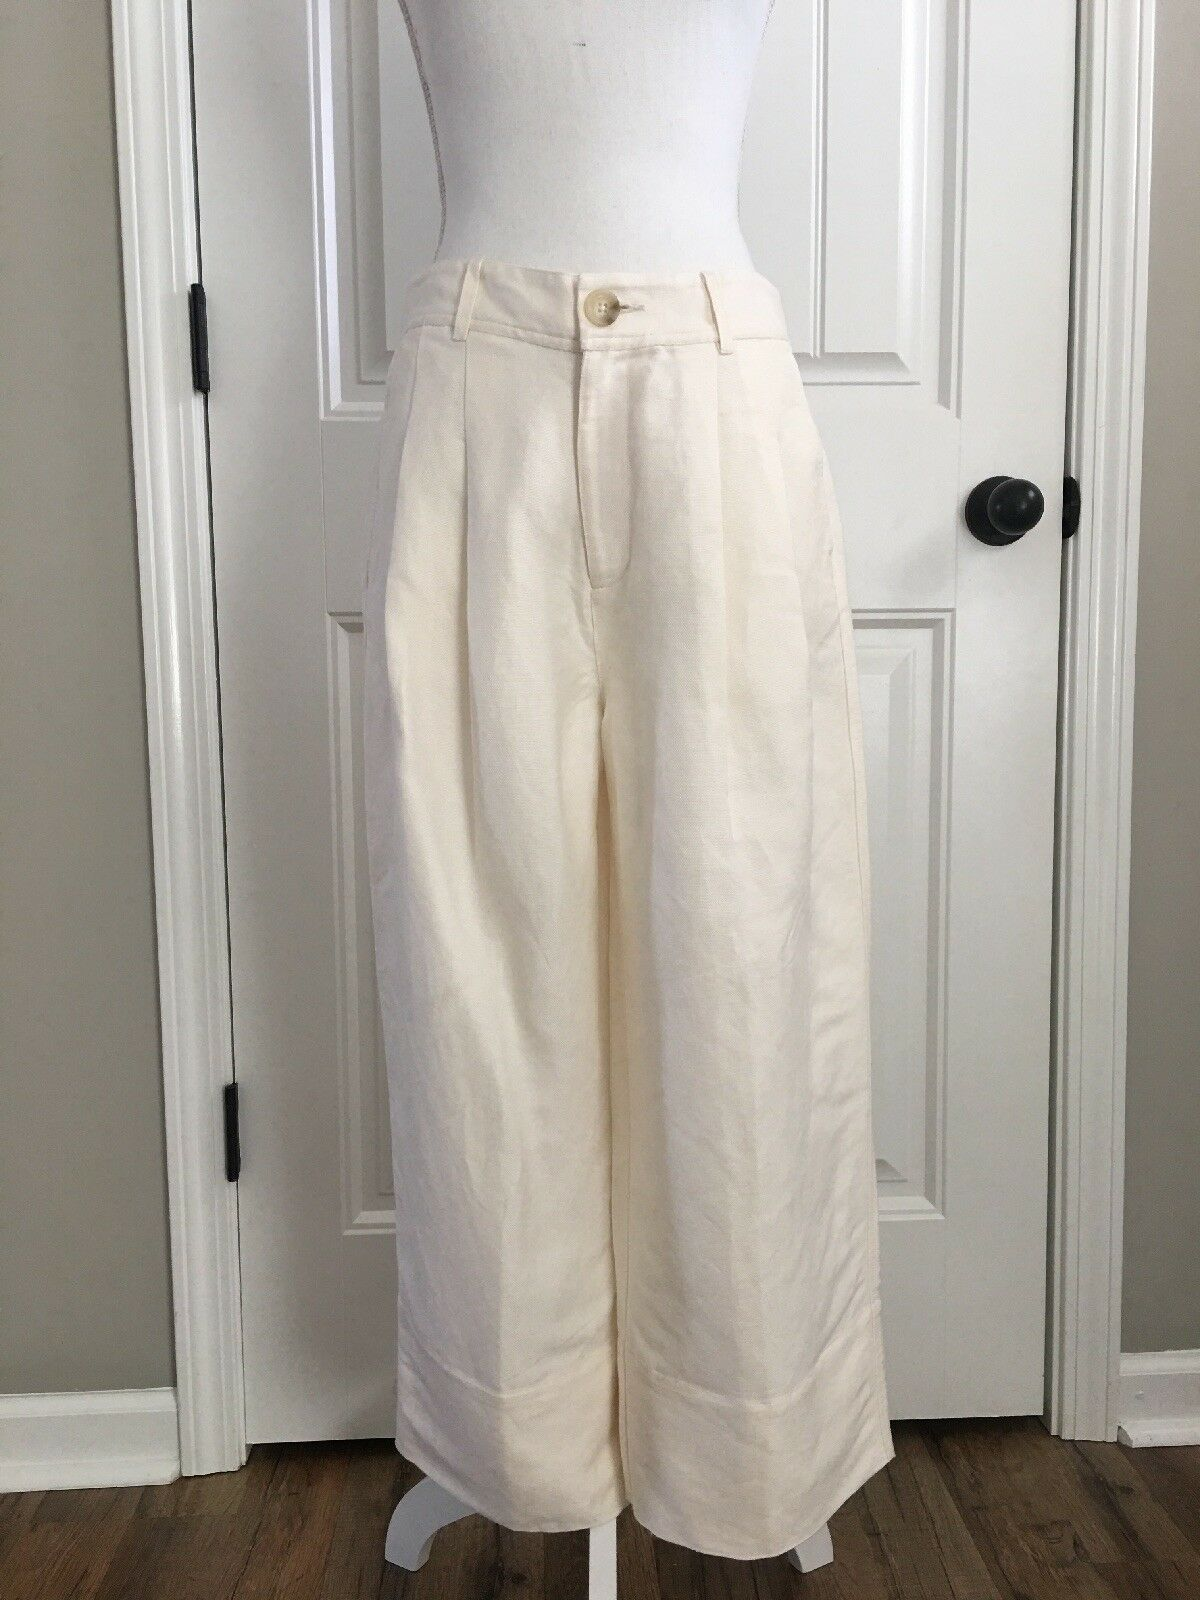 New Madewell Madewell Linen Blend Wide Leg Pants in White Wash Sz 6 H8685